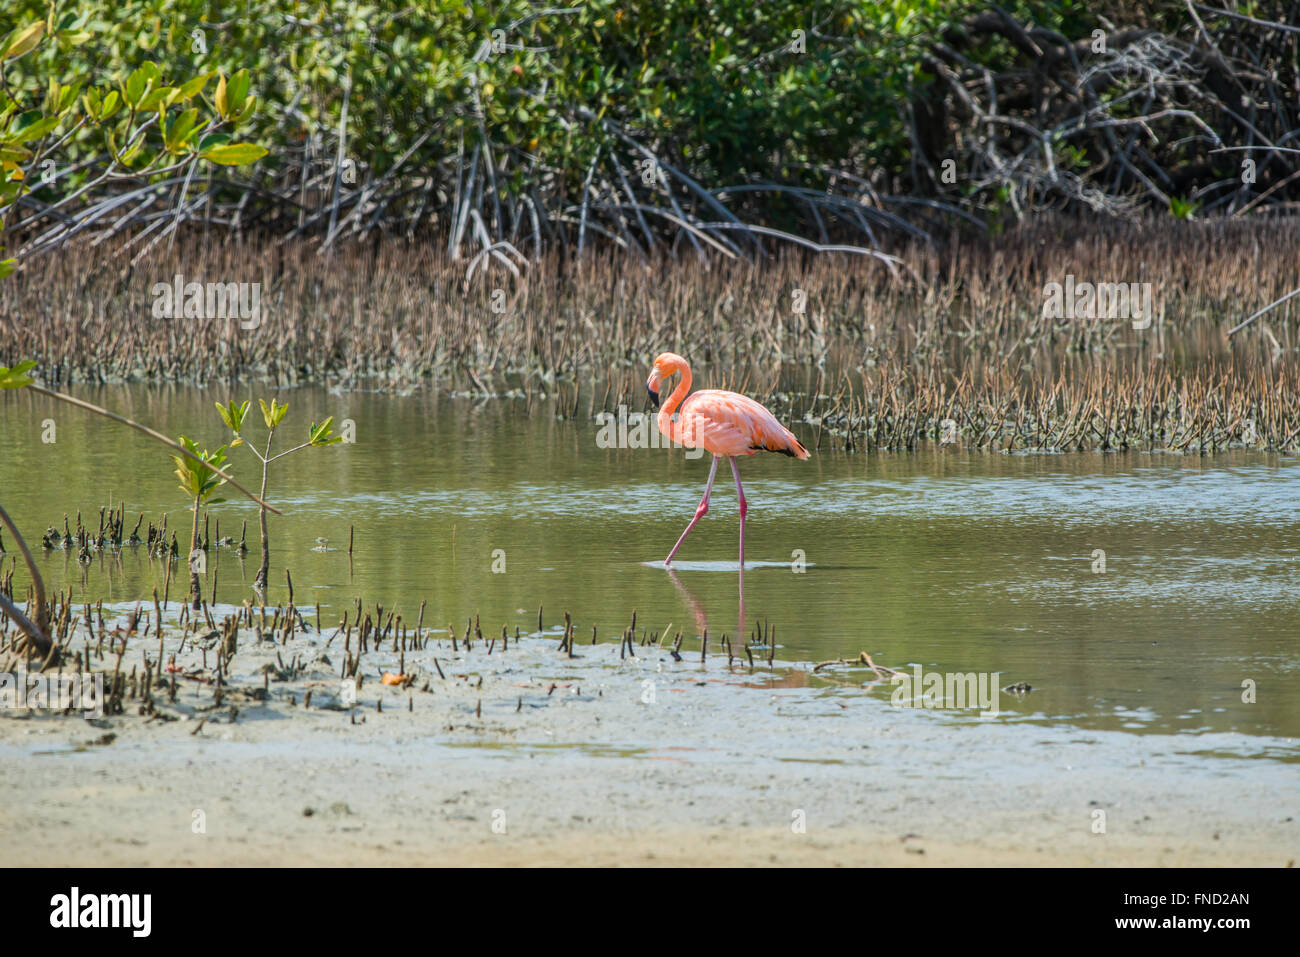 Rose Flamingo on Bonaire, Bonaire is one of the few breeding grounds in the world for these Birds. - Stock Image